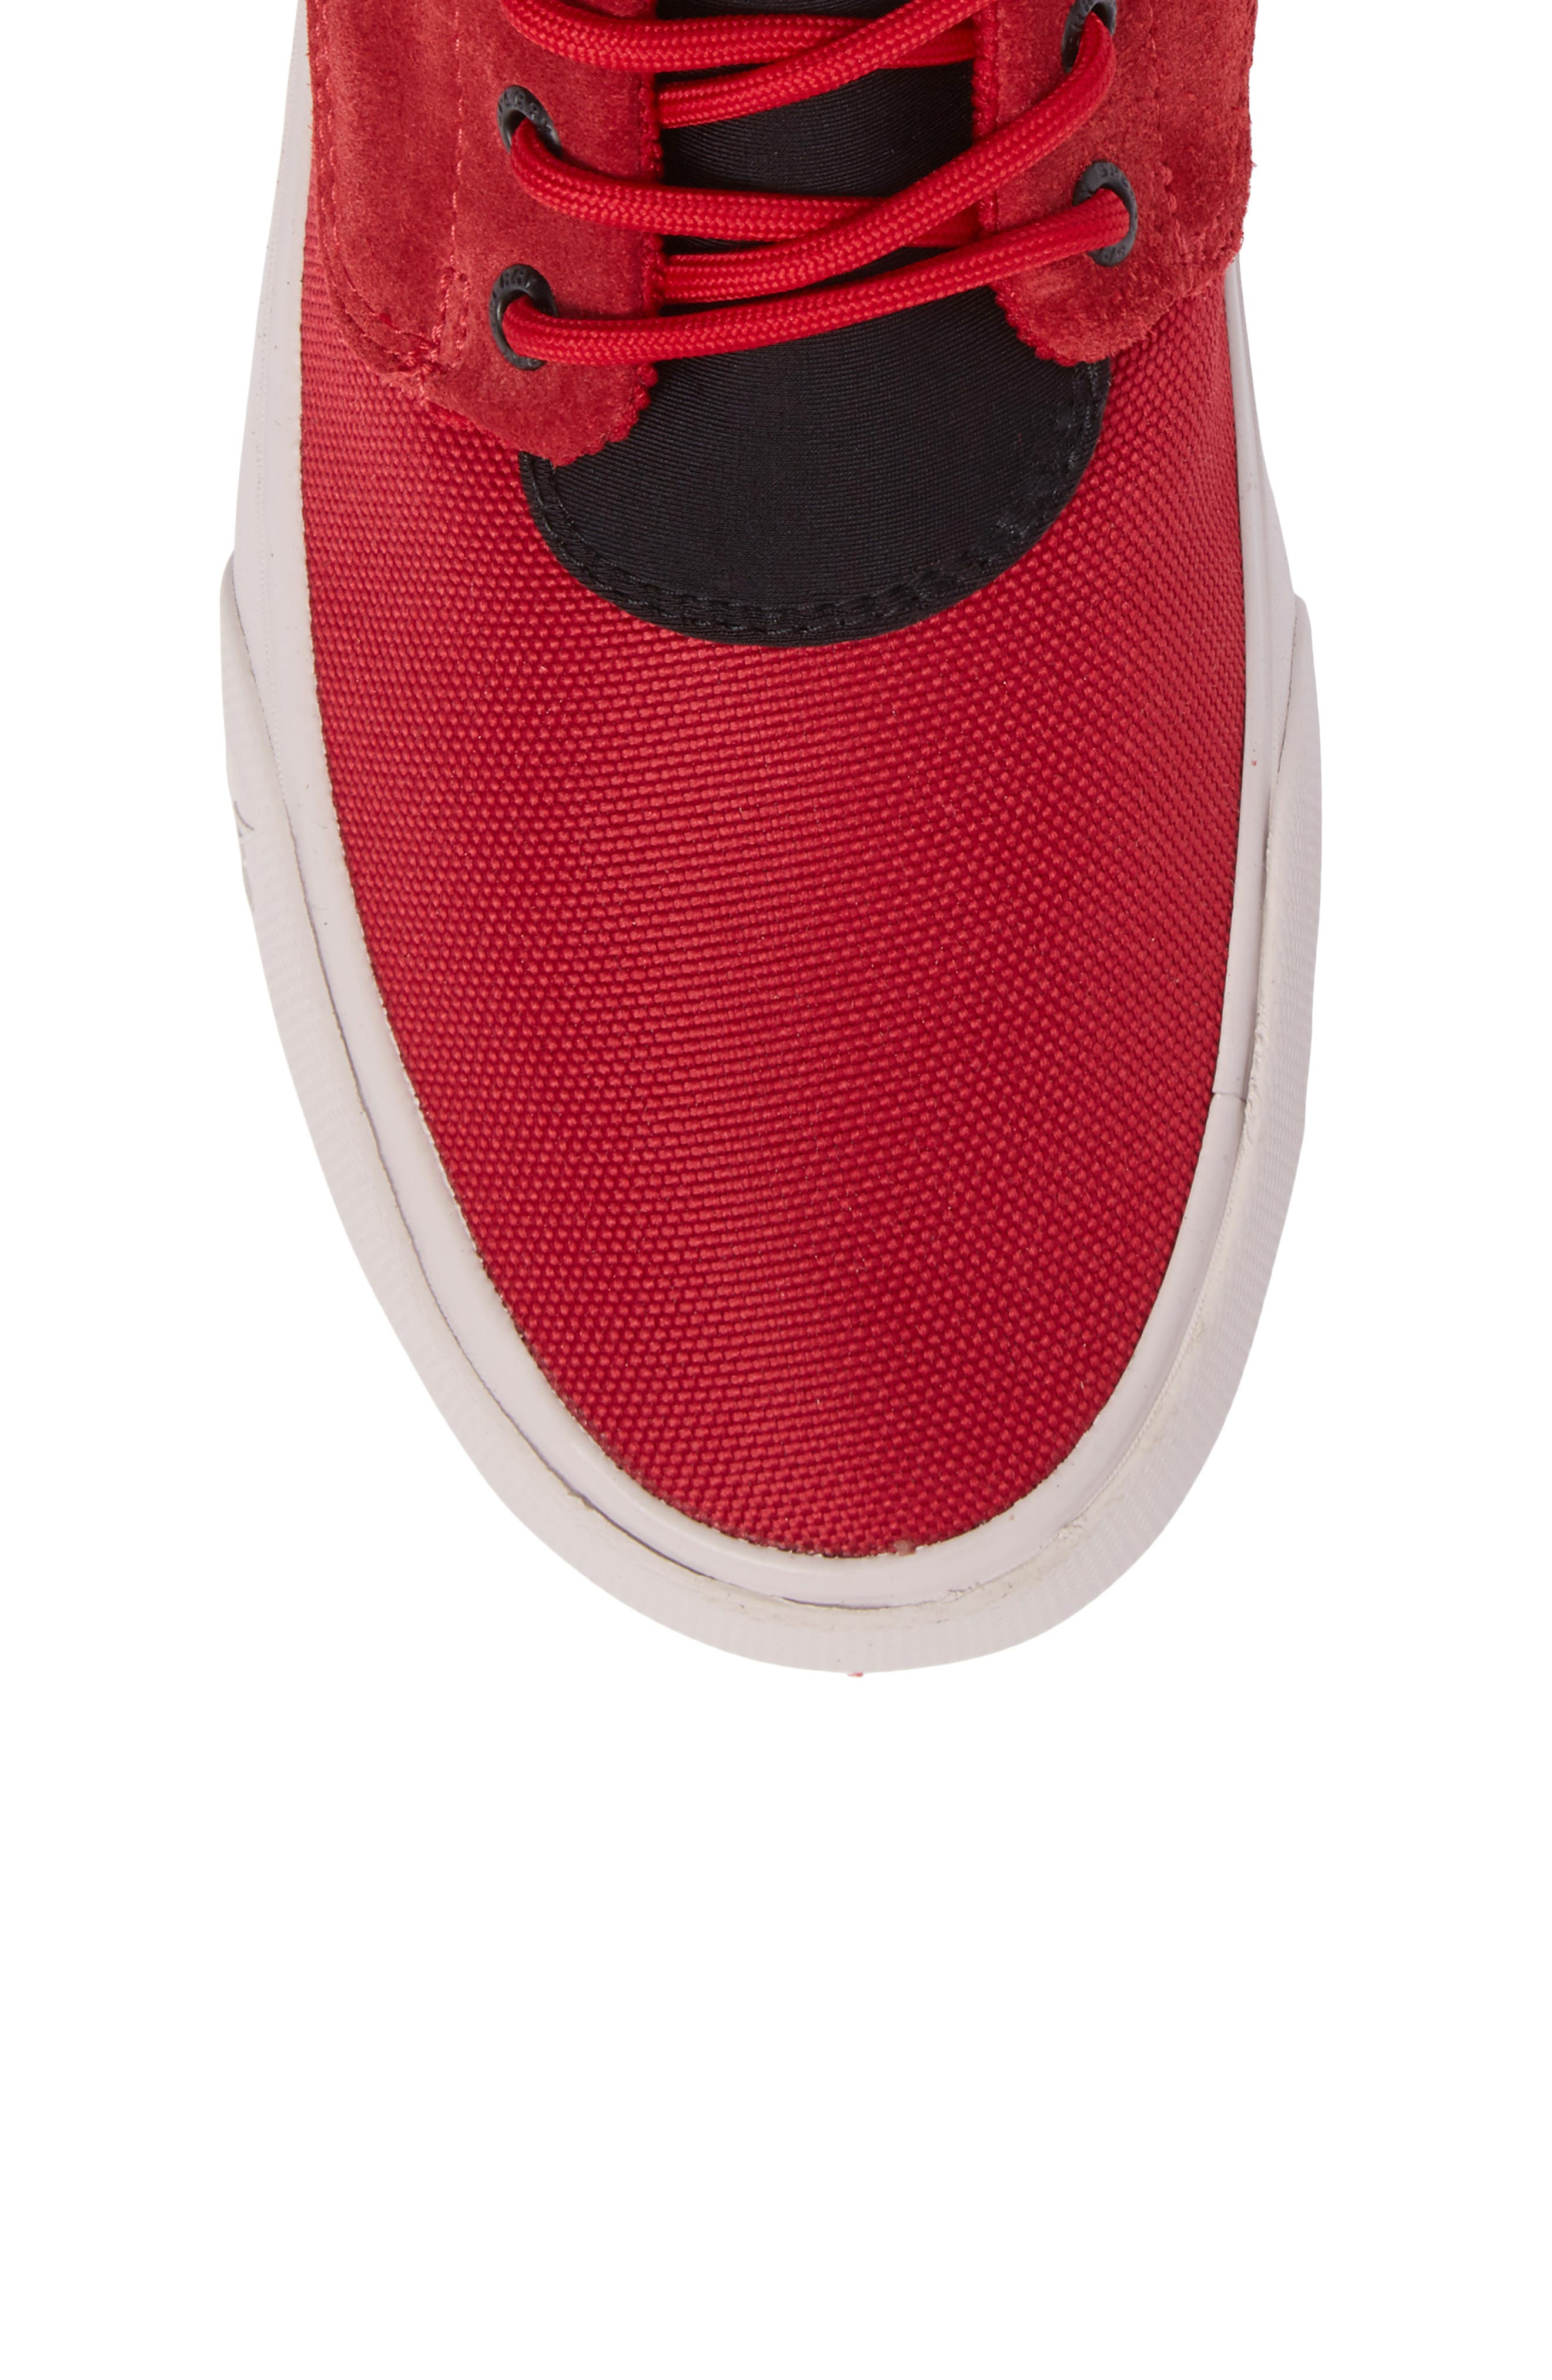 Cutwater Sneaker,                             Alternate thumbnail 5, color,                             Red